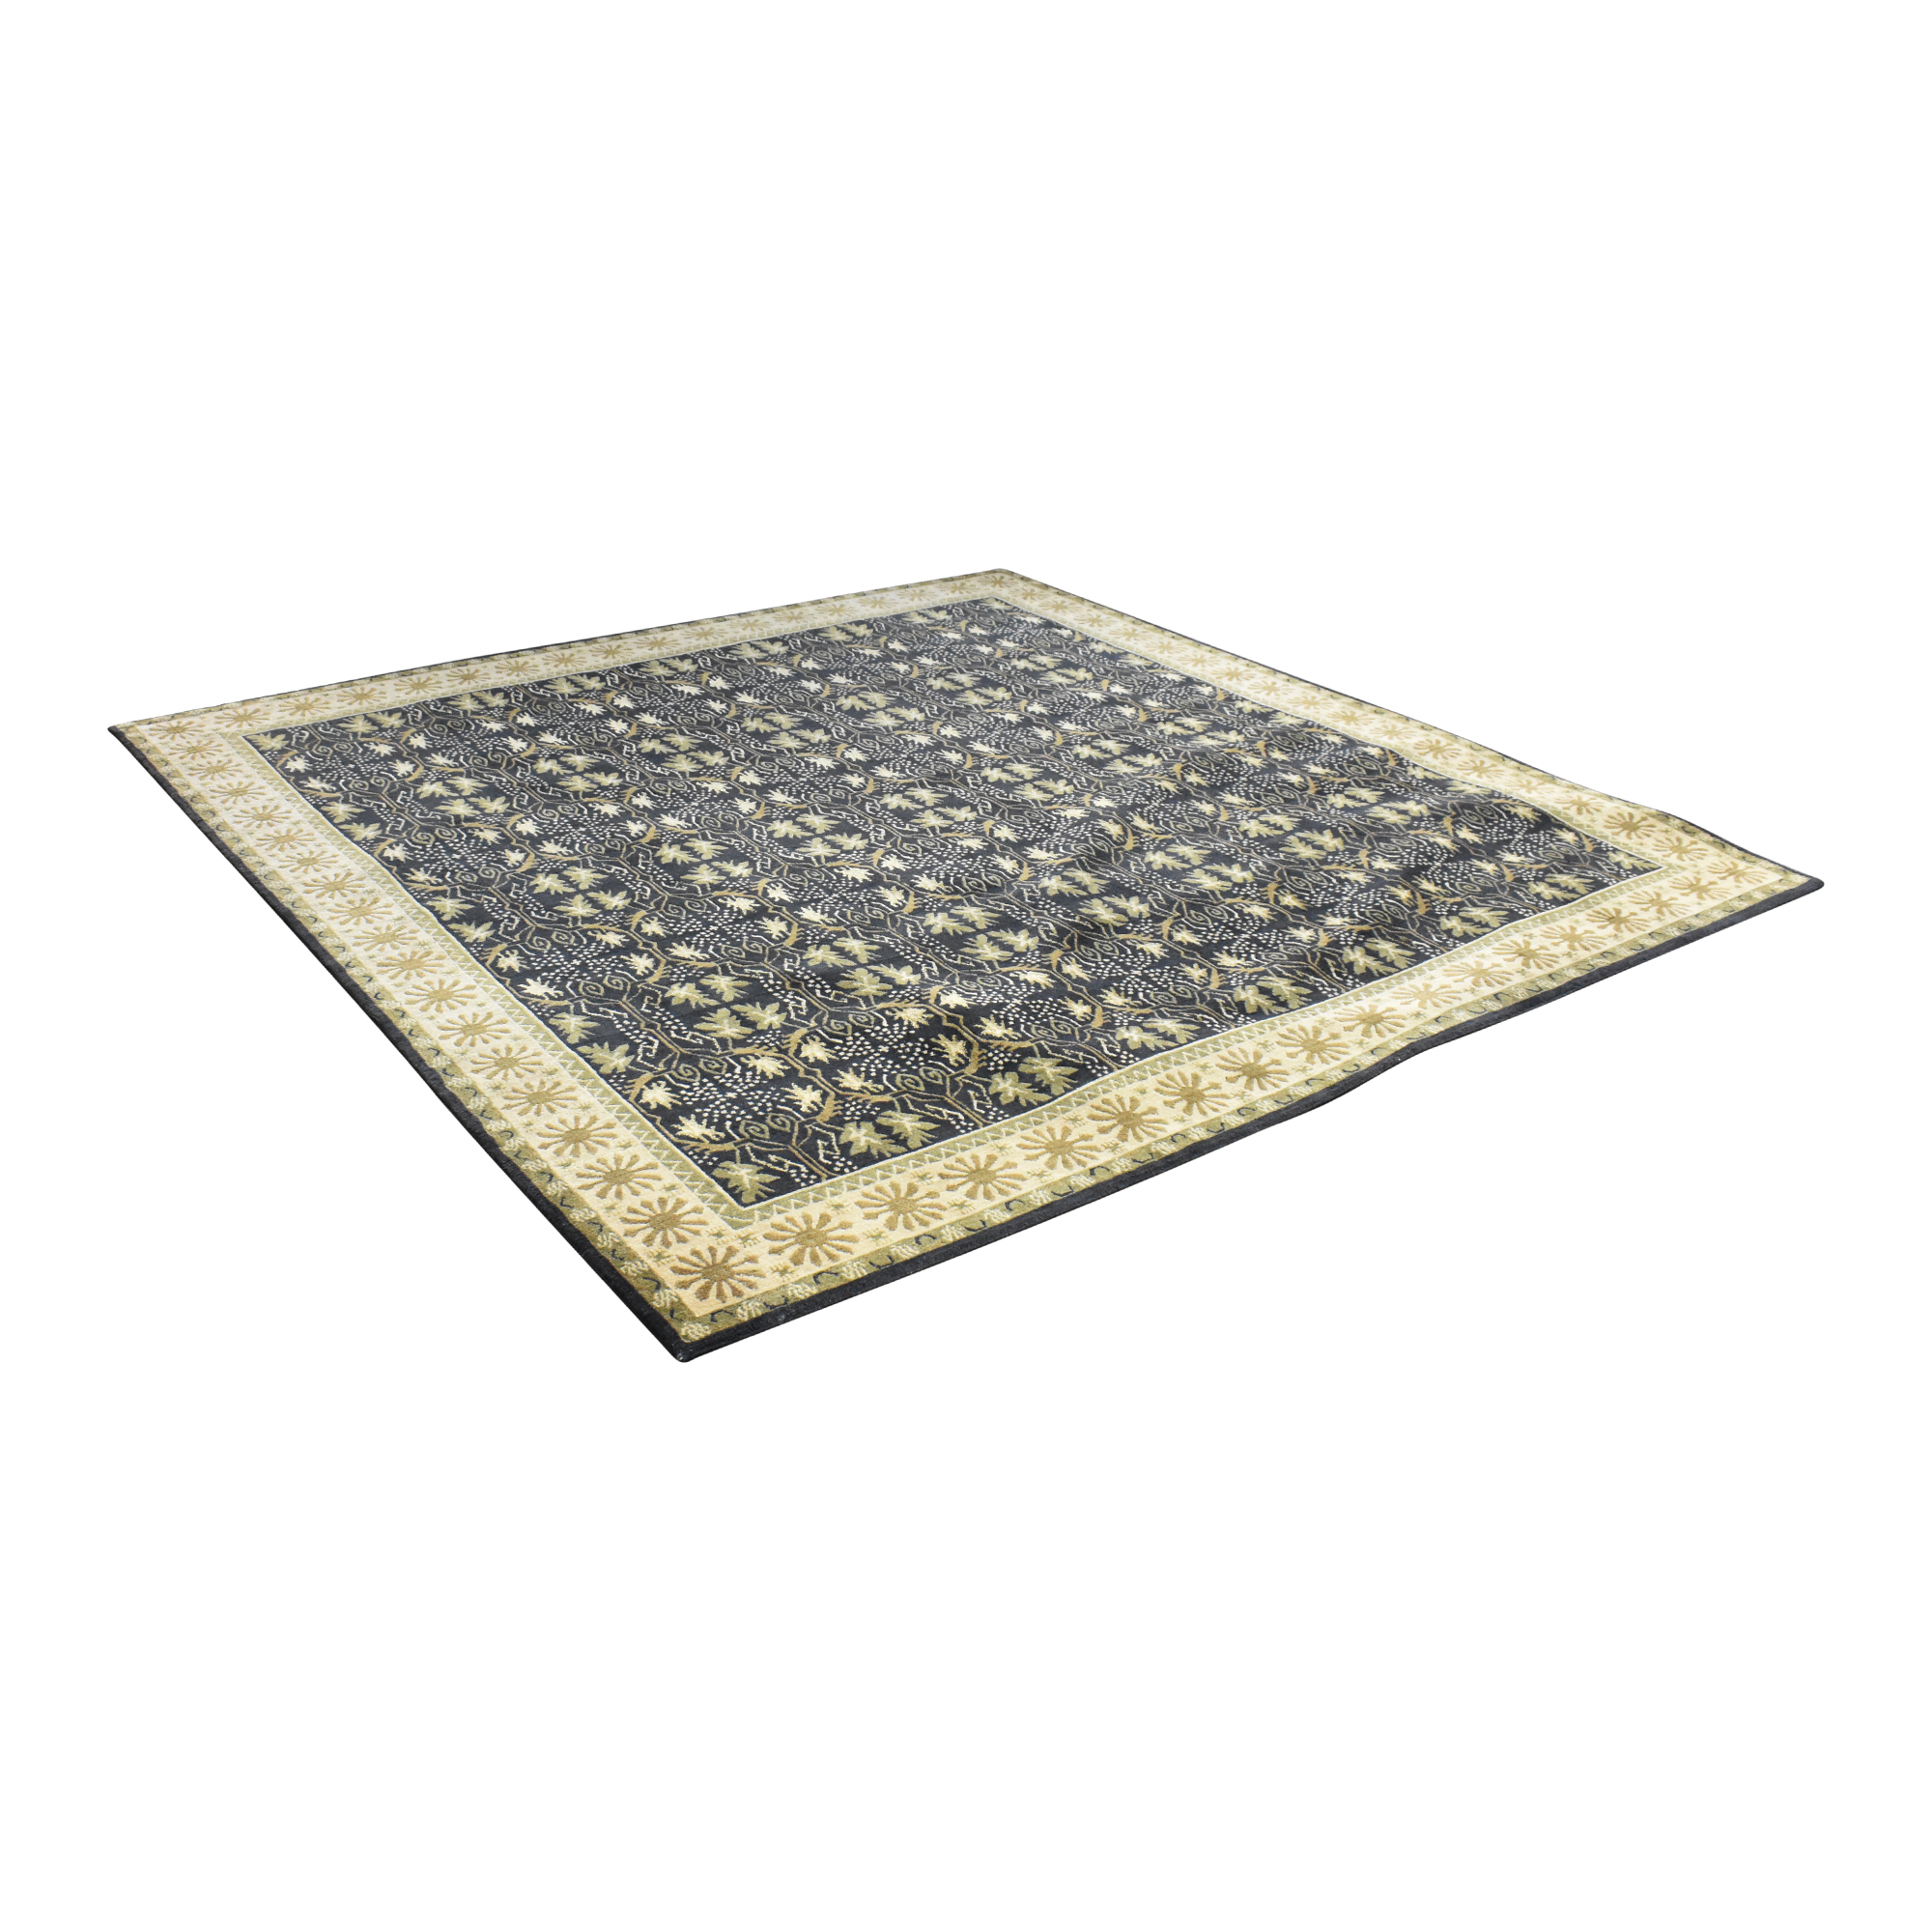 shop Herford Imports Handmade Tibetan Area Rug Herford Imports Rugs